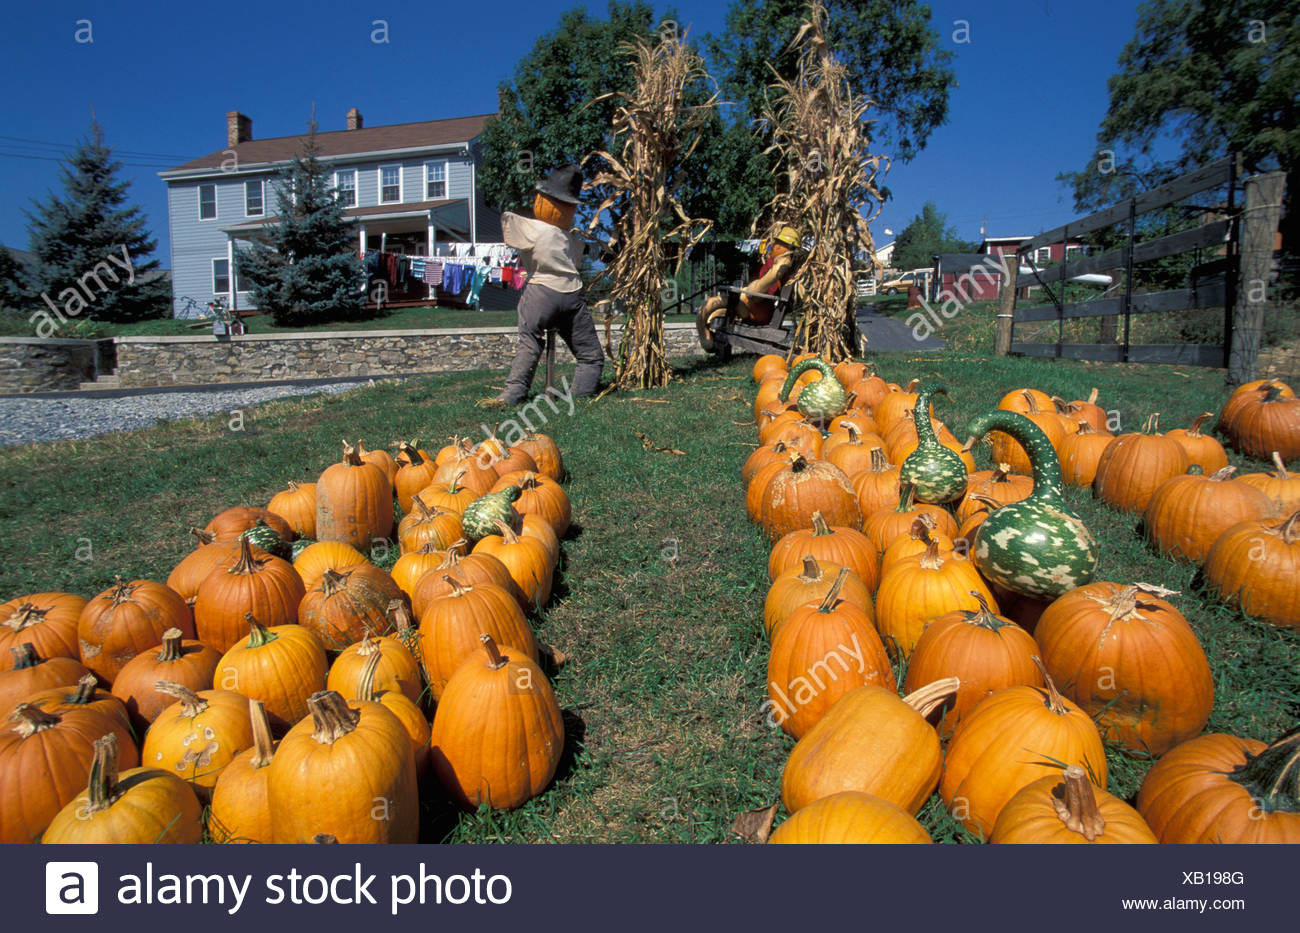 New Holland Amish Country Dutch Country Pennsylvania USA United States America pumpkins pumpkin vegetables d - Stock Image